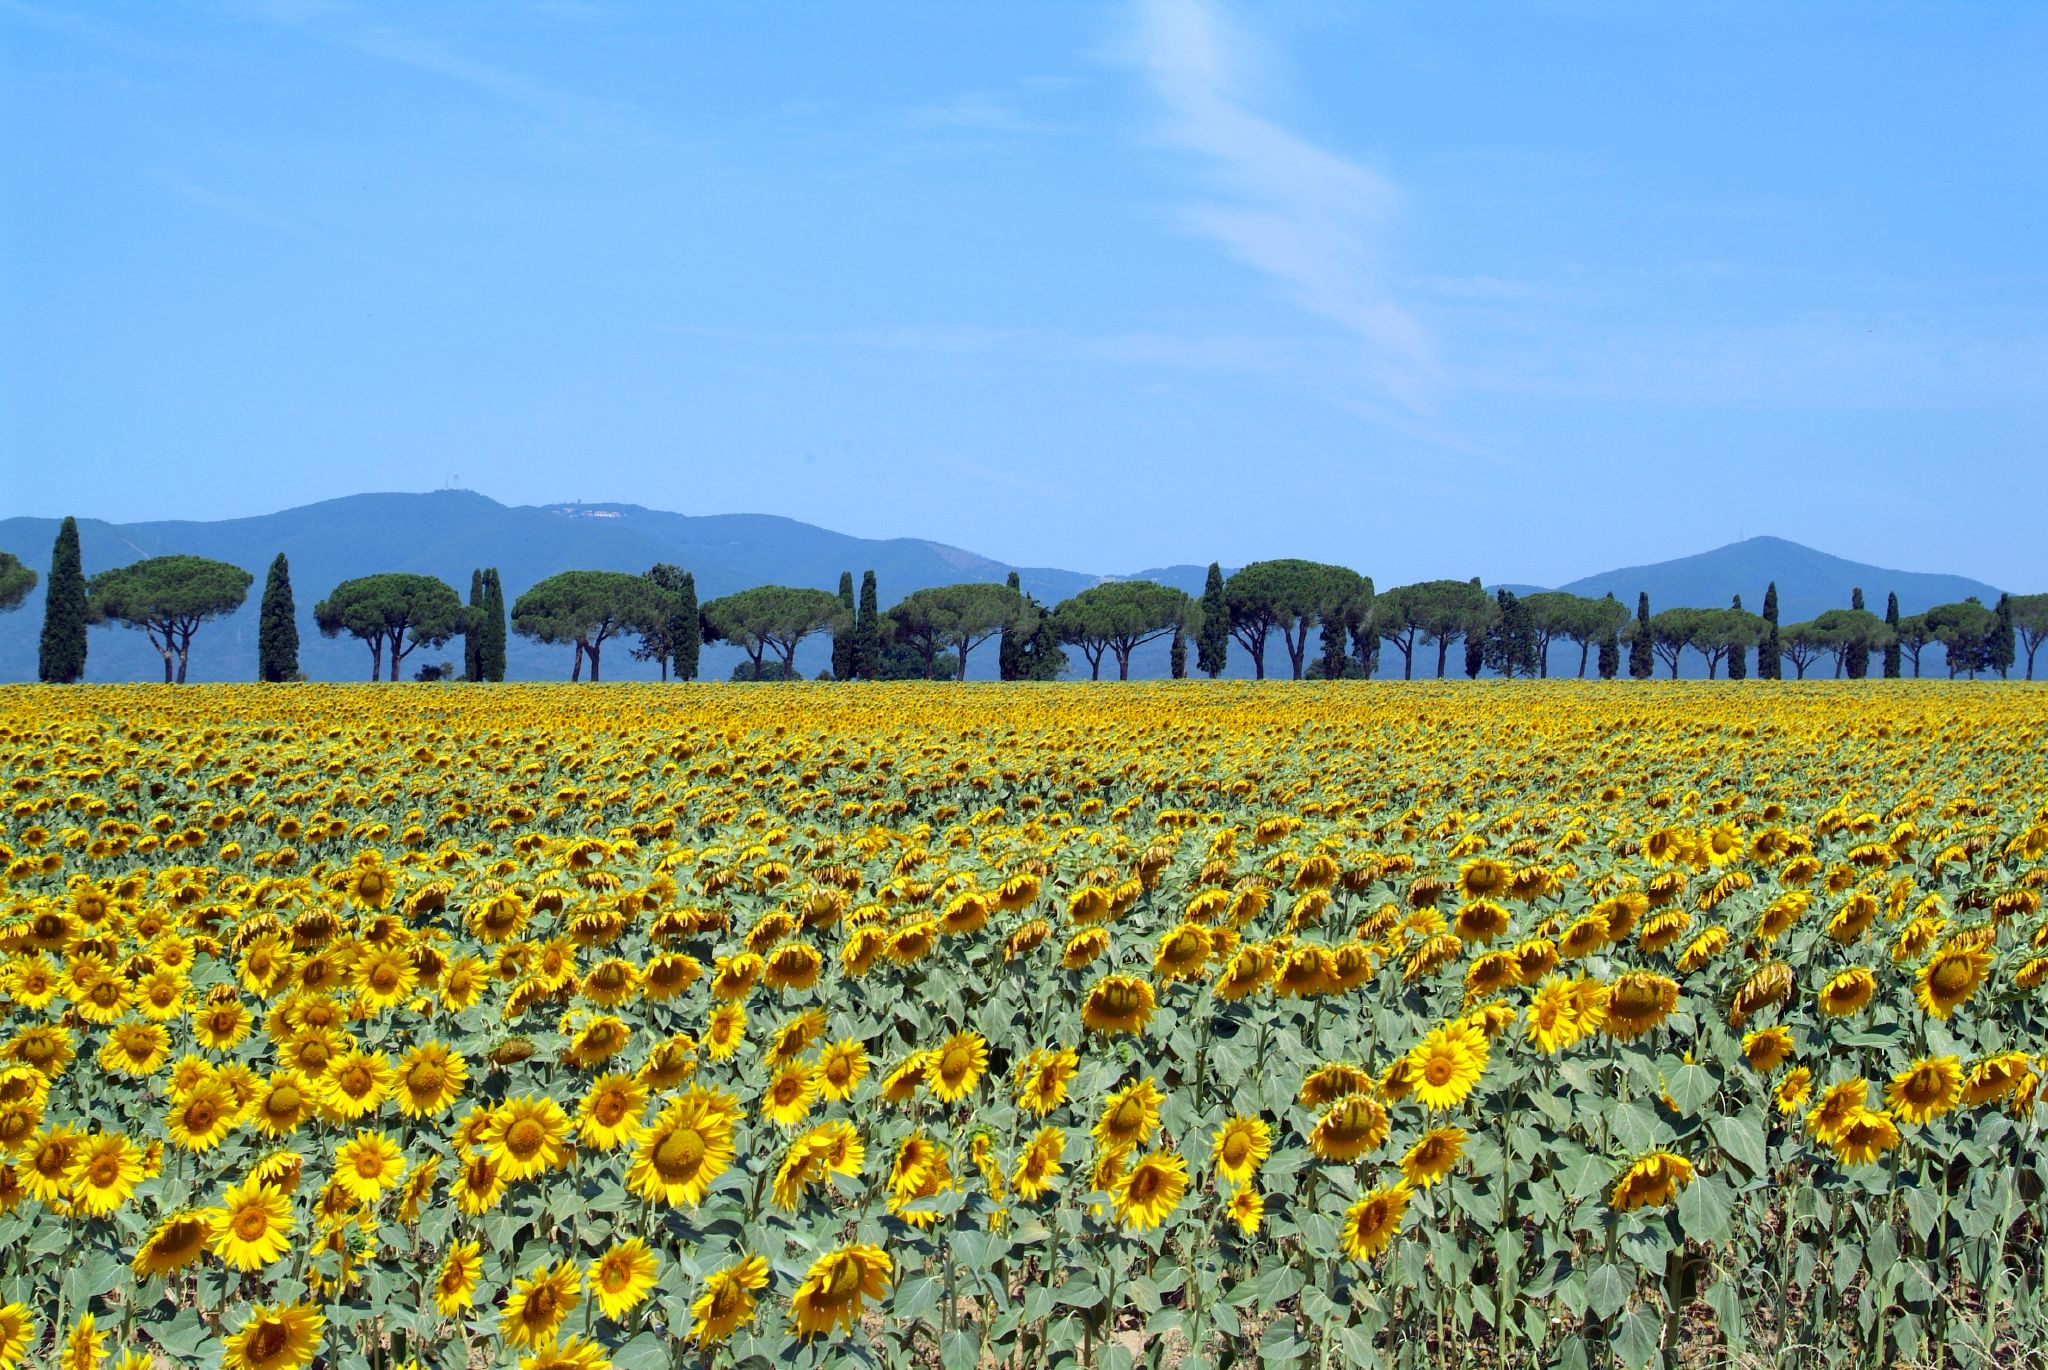 sunflowers_in_bloom_-_maremma_toscana_-_italy_-_25_june_2005